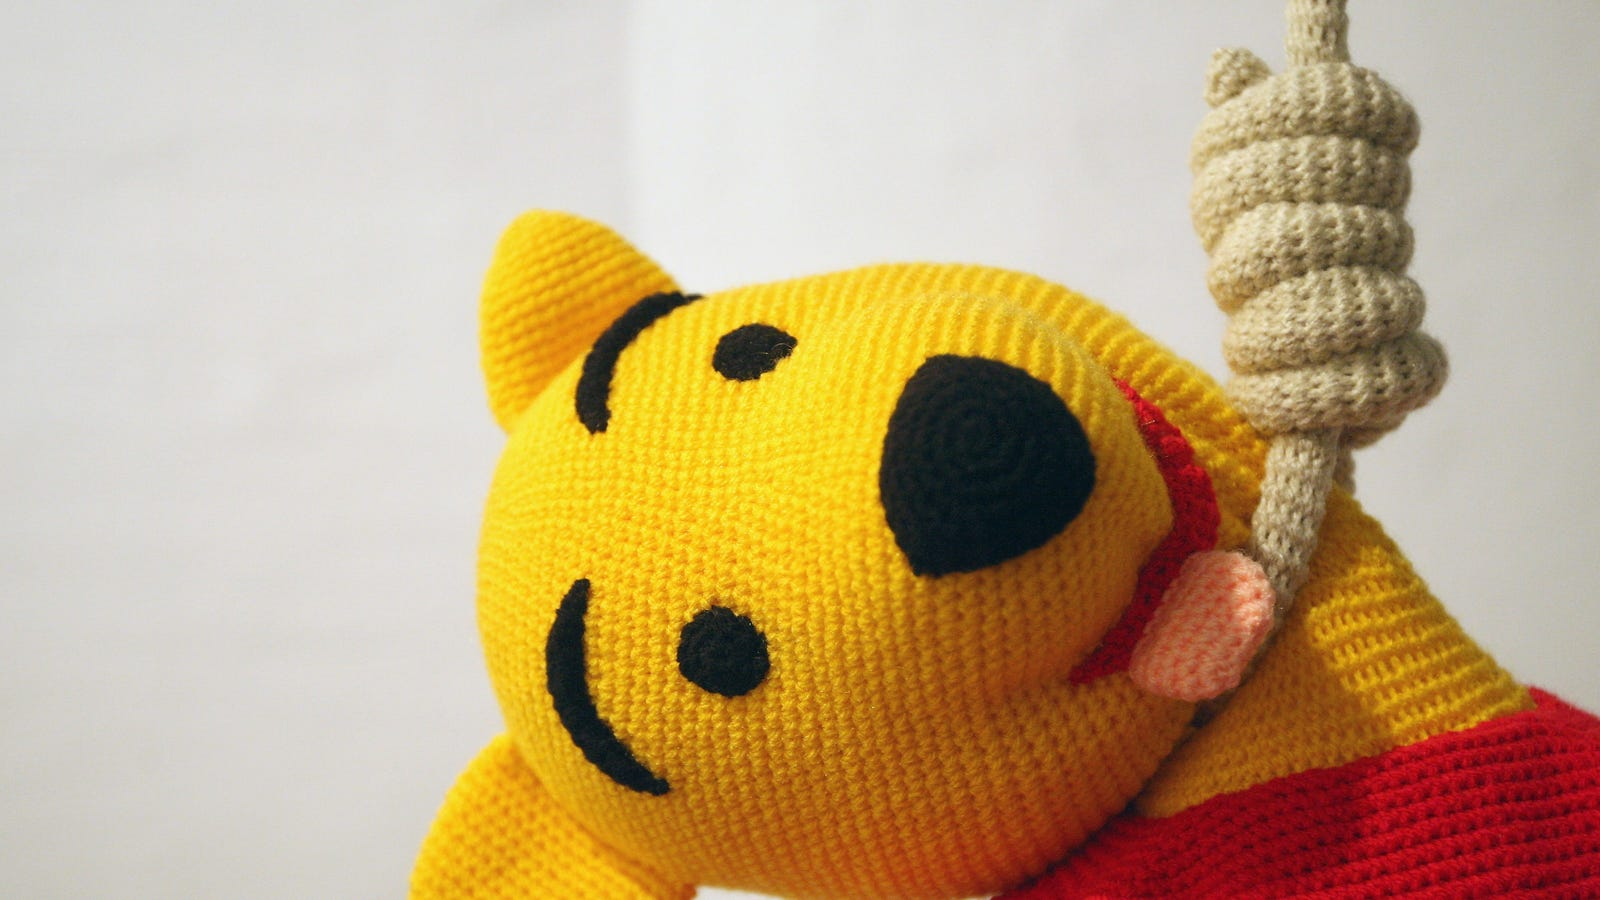 photo image Chinese Censors Have Apparently Blocked 'Winnie the Pooh' Over a Silly Meme